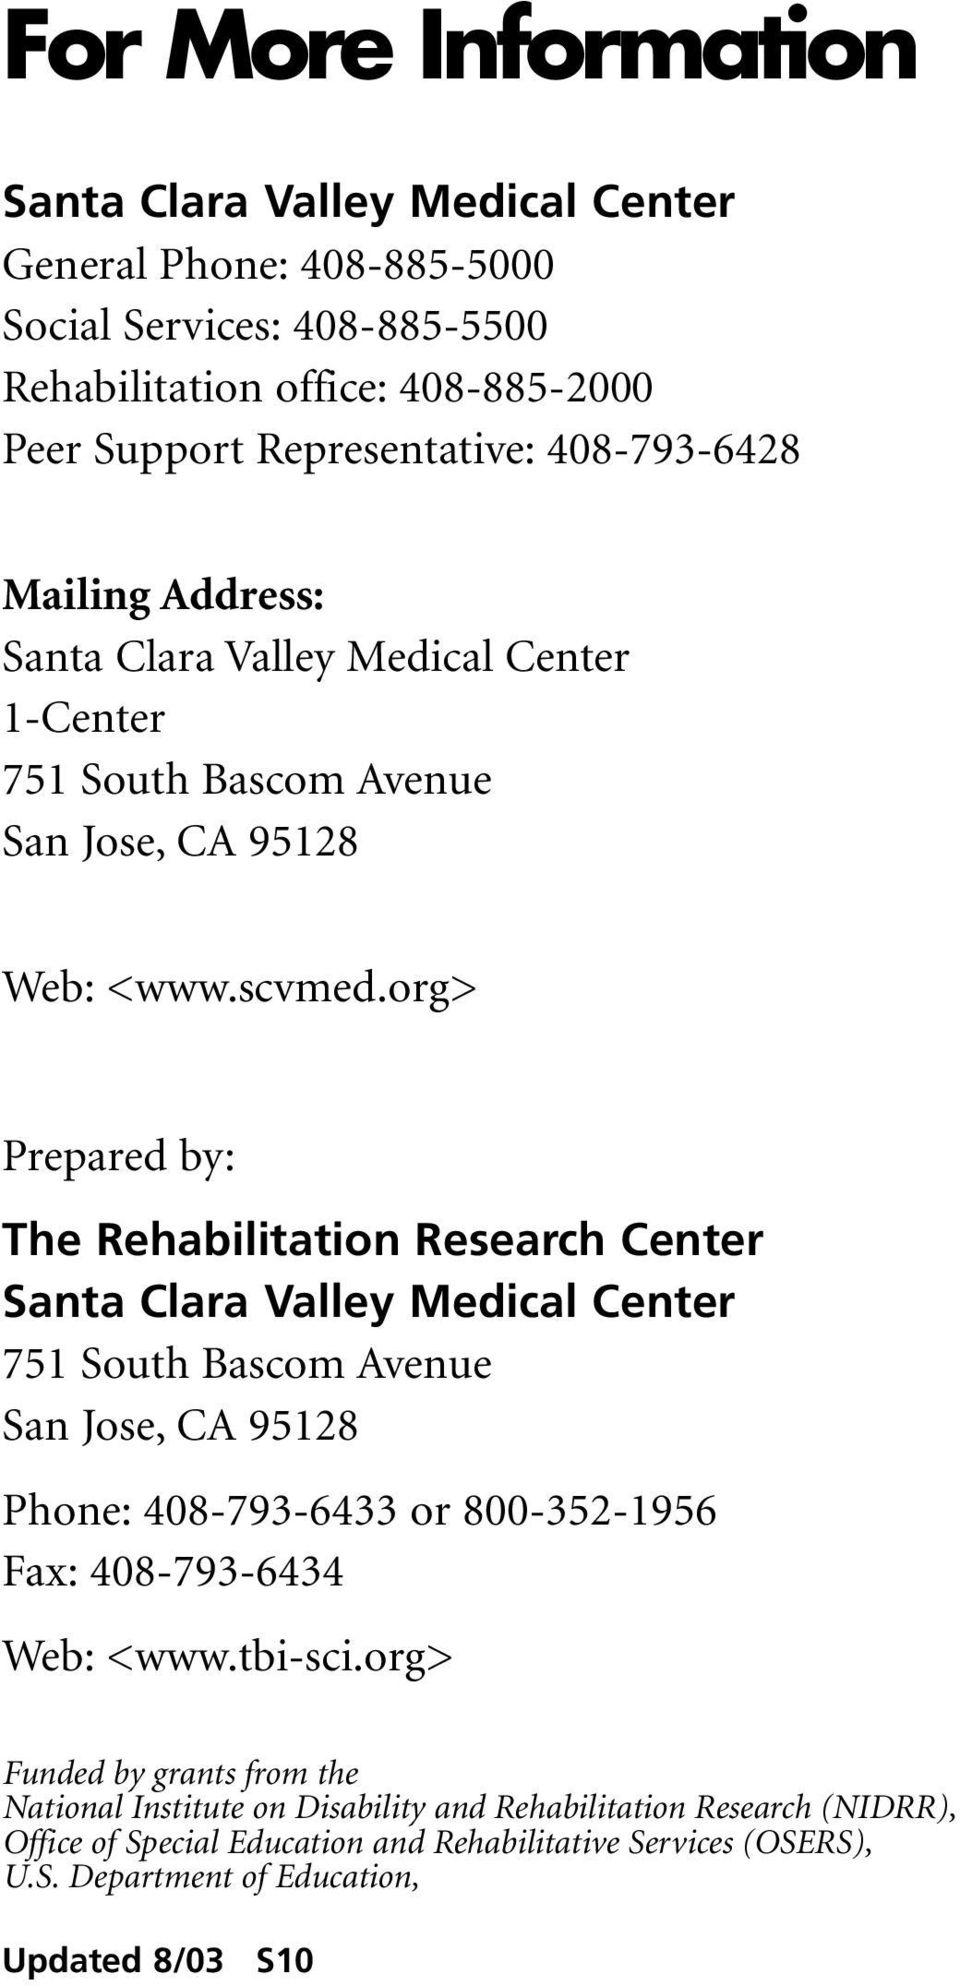 org> Prepared by: The Rehabilitation Research Center Santa Clara Valley Medical Center 751 South Bascom Avenue San Jose, CA 95128 Phone: 408-793-6433 or 800-352-1956 Fax: